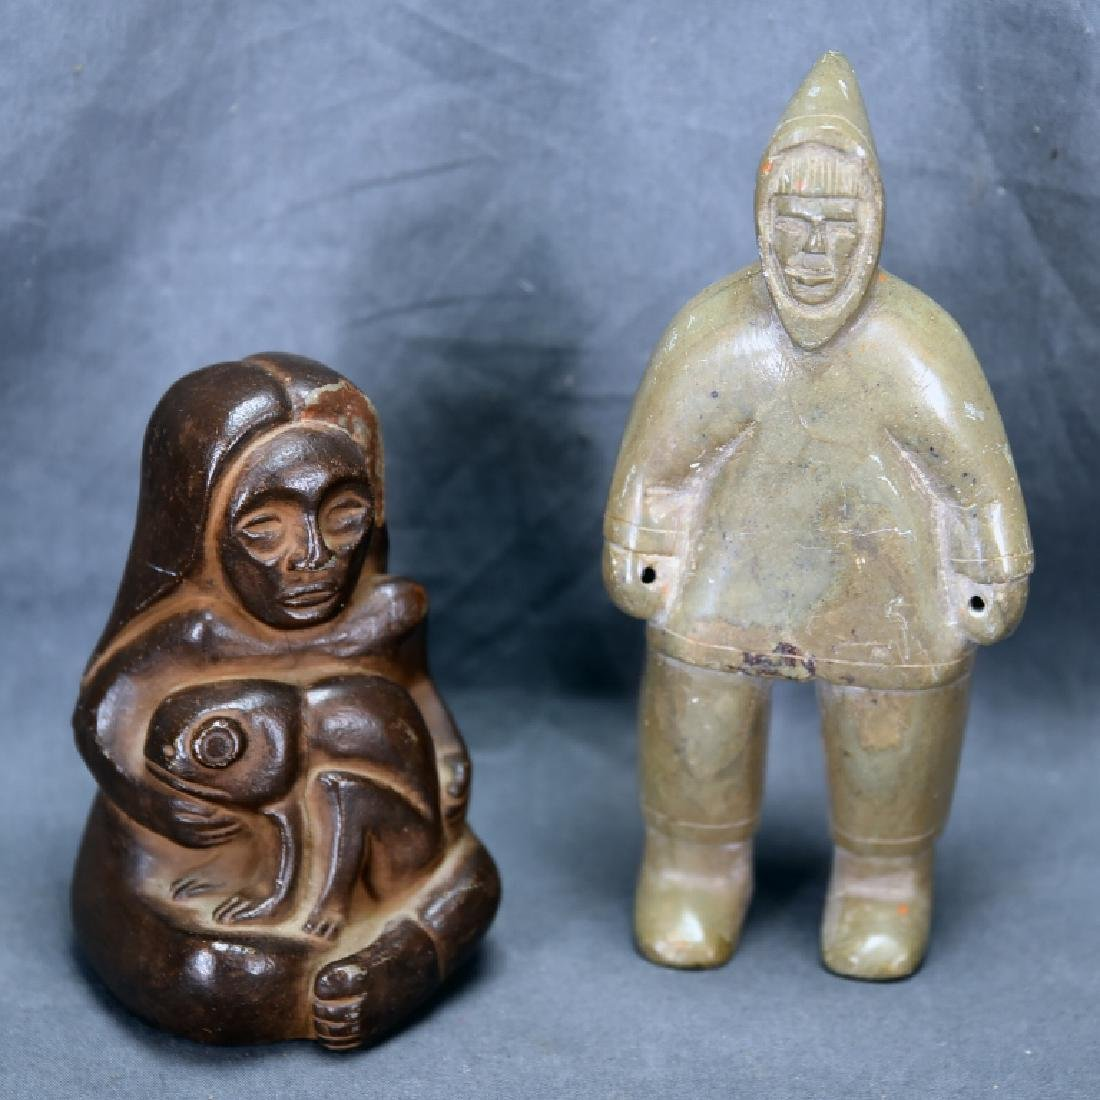 2 Northwest Coastal Area Stone Carvings, Man and Woman